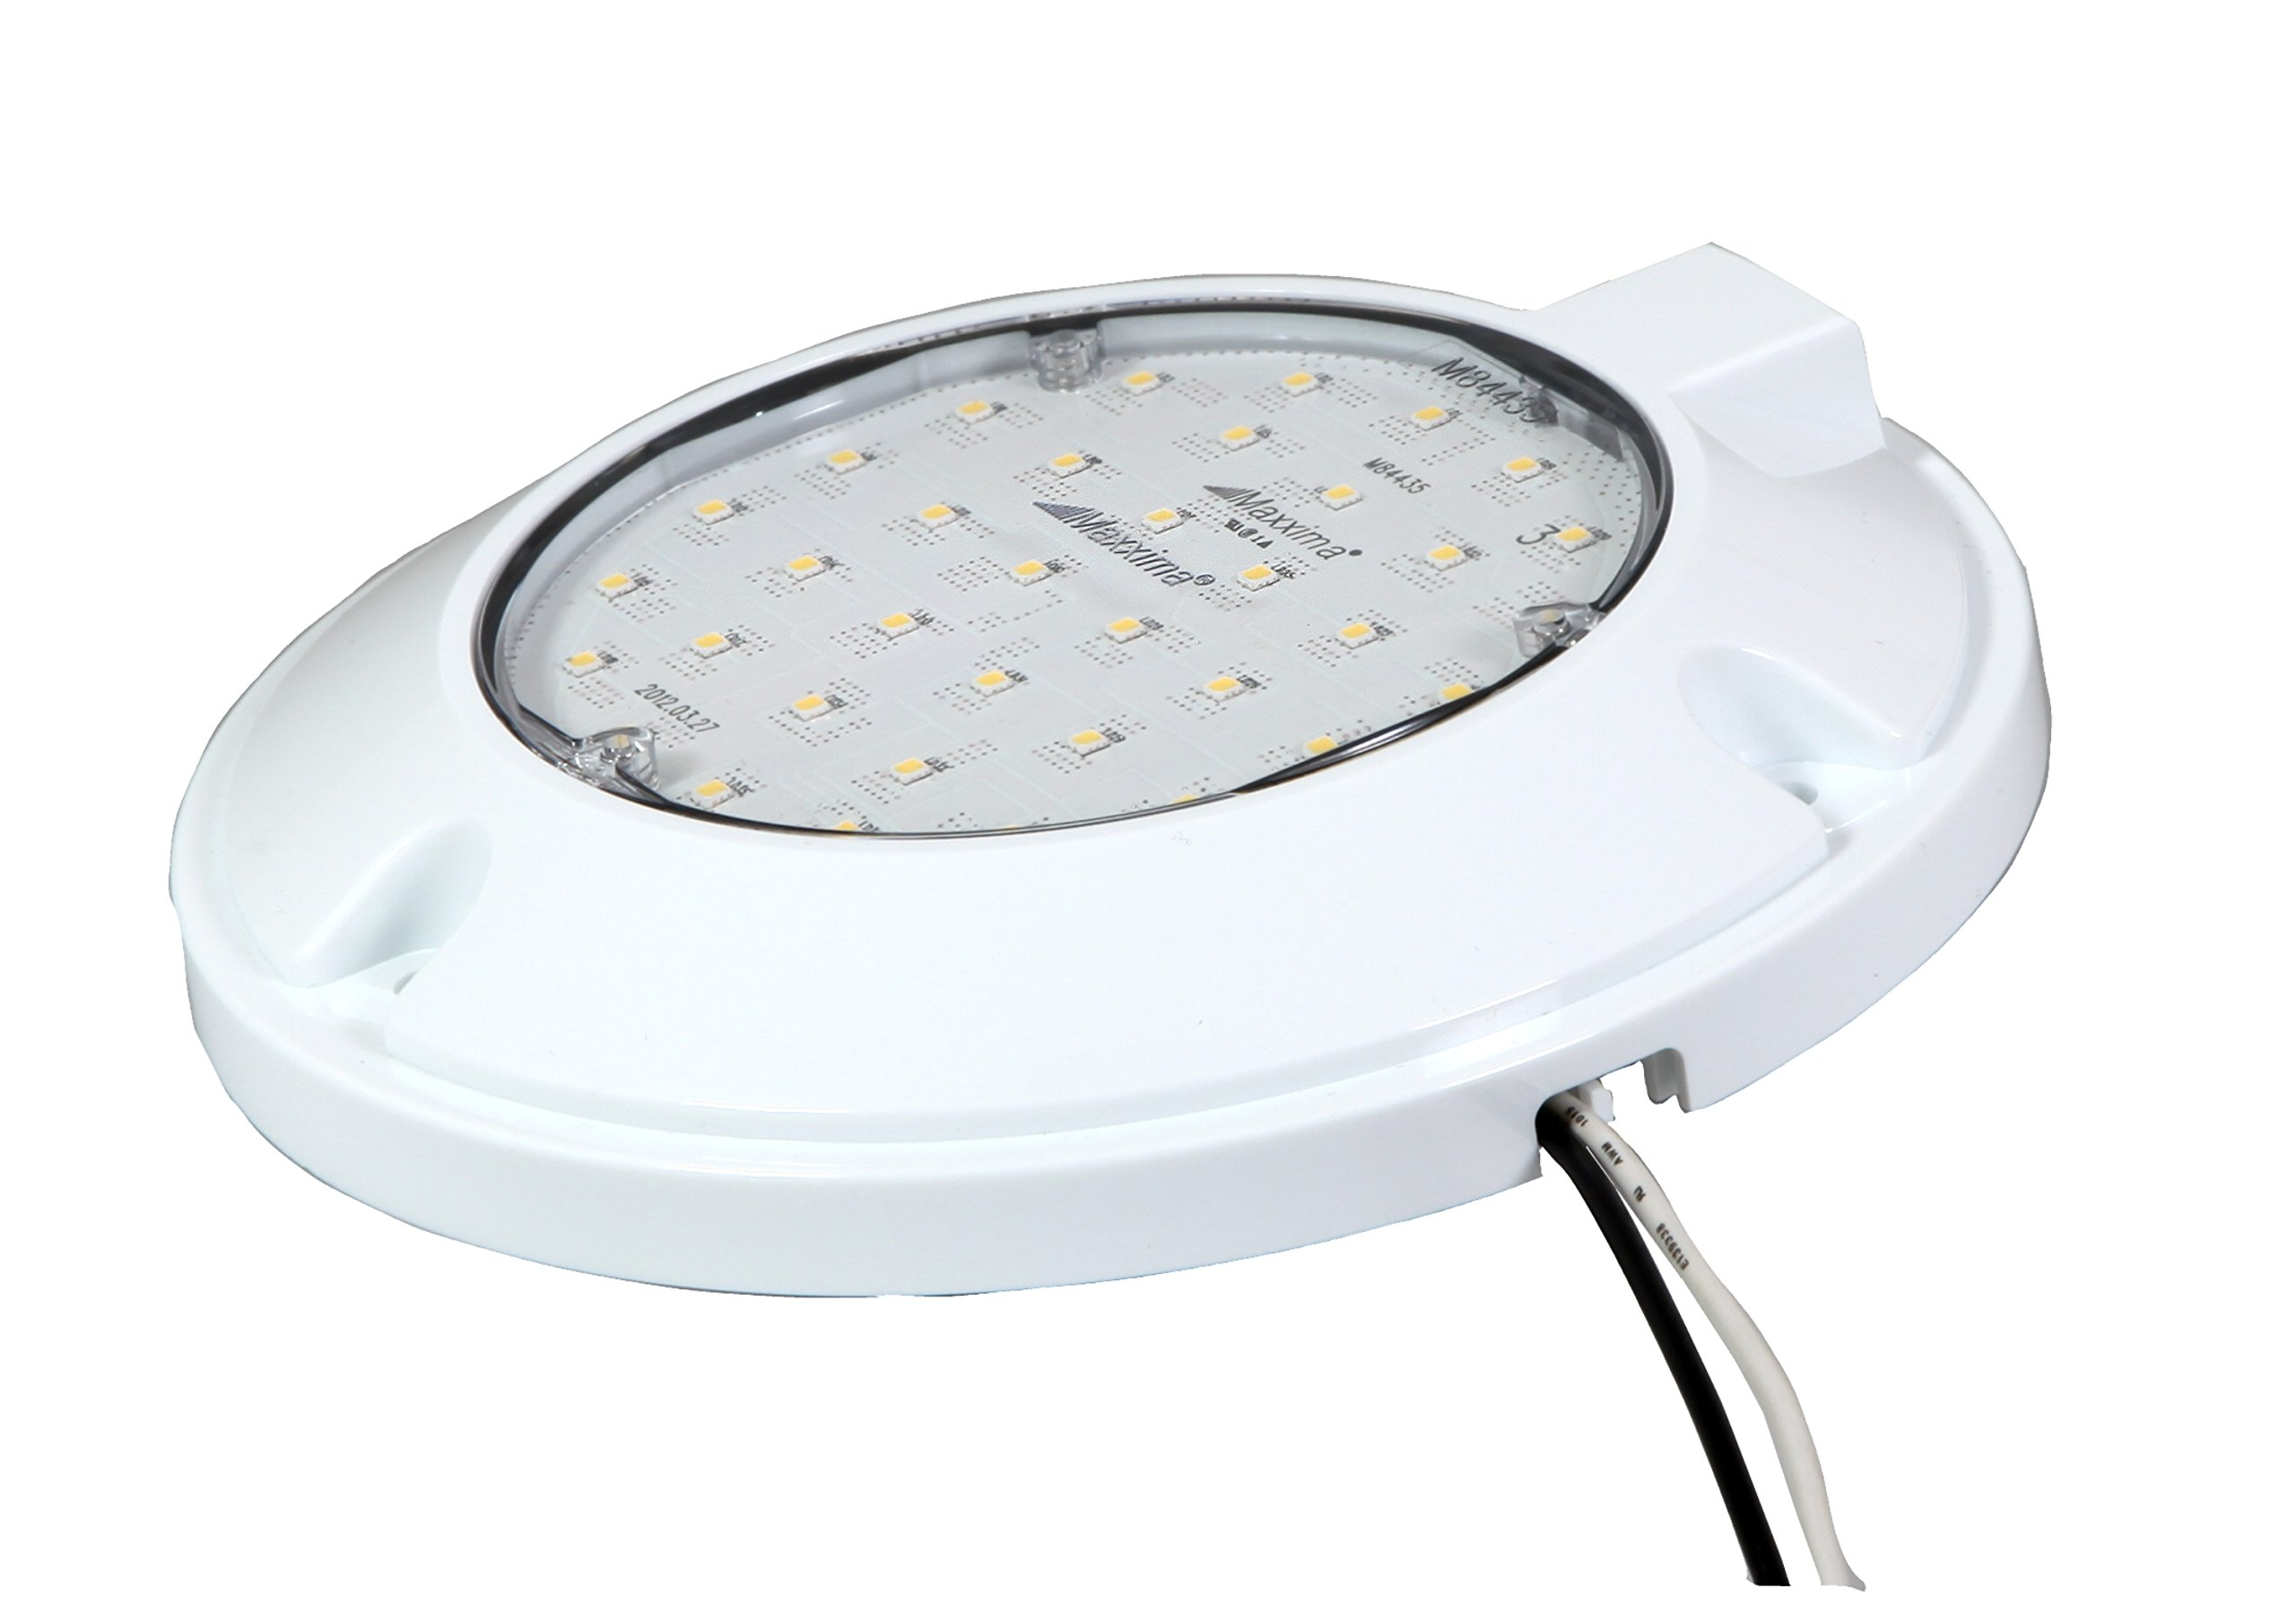 Maxxima (M84435) 6'' Interior Hard Wired LED Dome Light by Maxxima